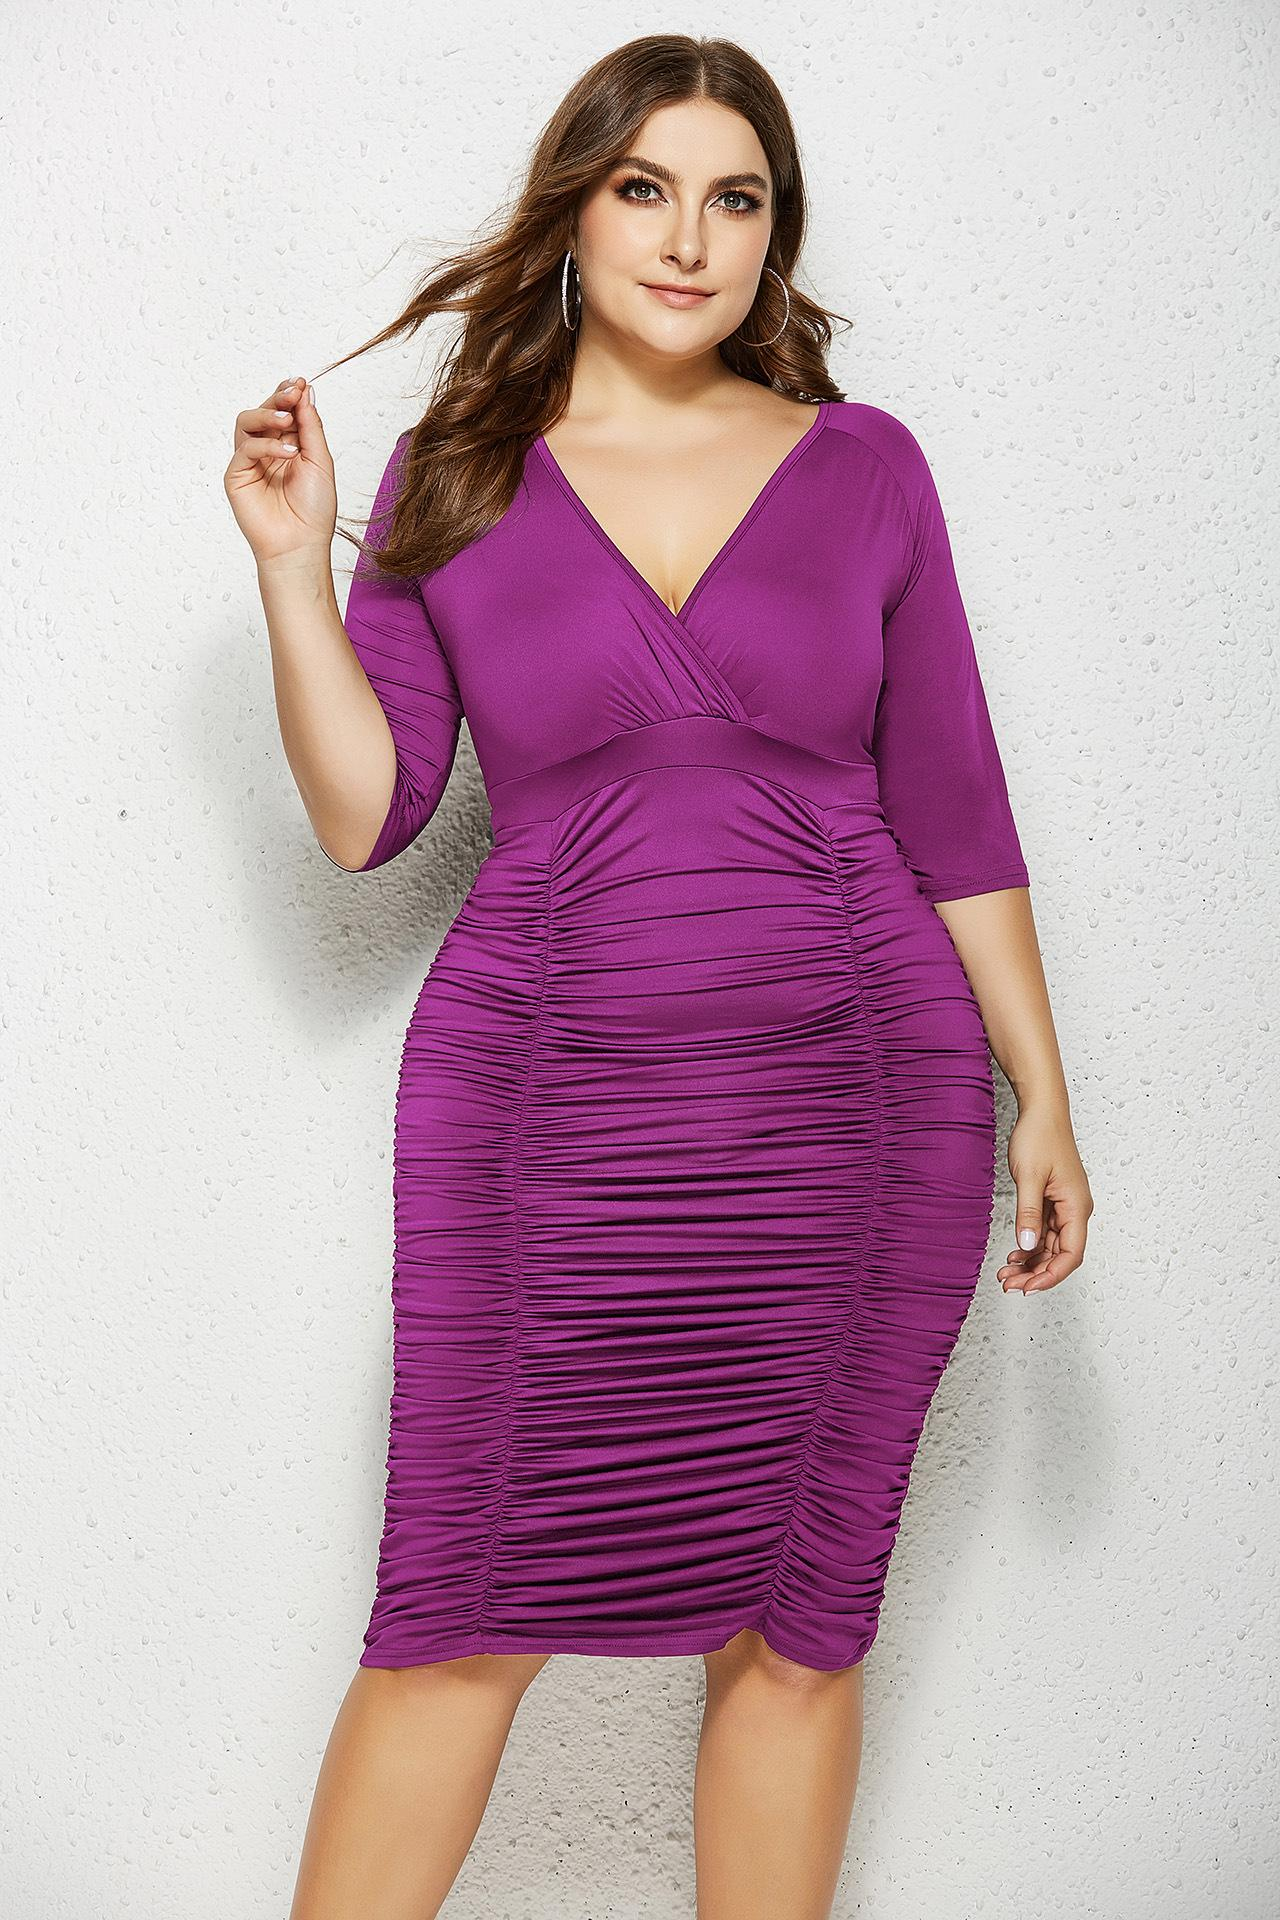 8 Womens Bodycon Dress Plus Size Dresses Party Tight